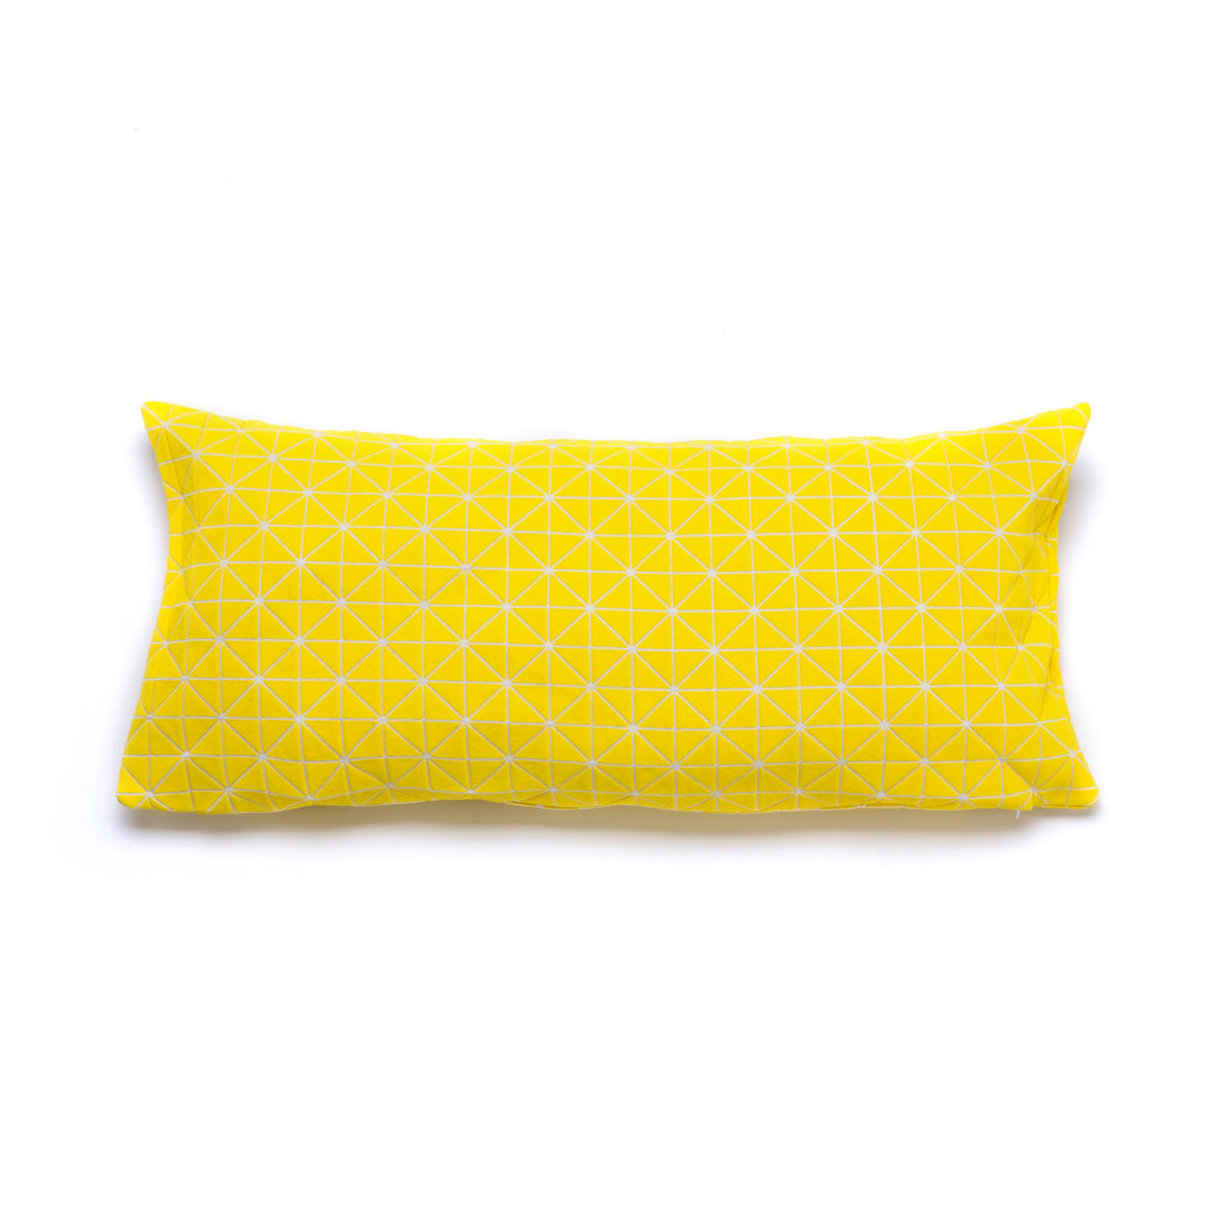 Chic yellow throw pillows with 20x20 inches and with true patterns yellow throw pillows for living room ideas